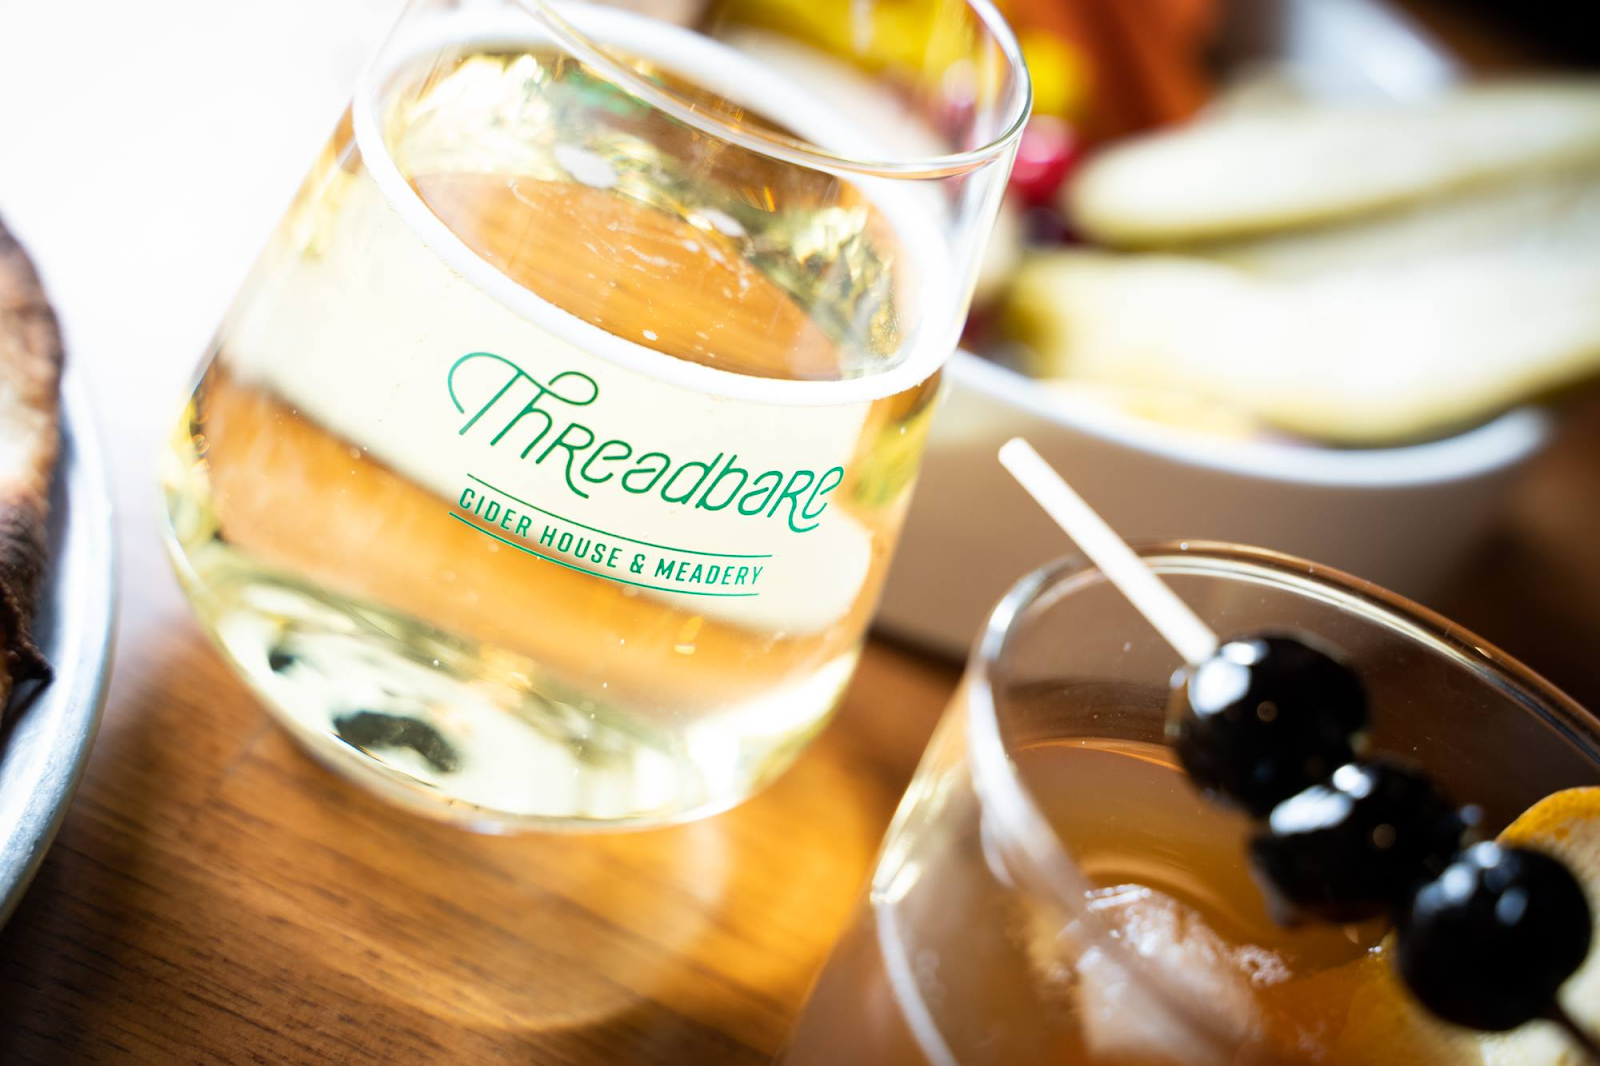 Threadbare Cider house and Meadery